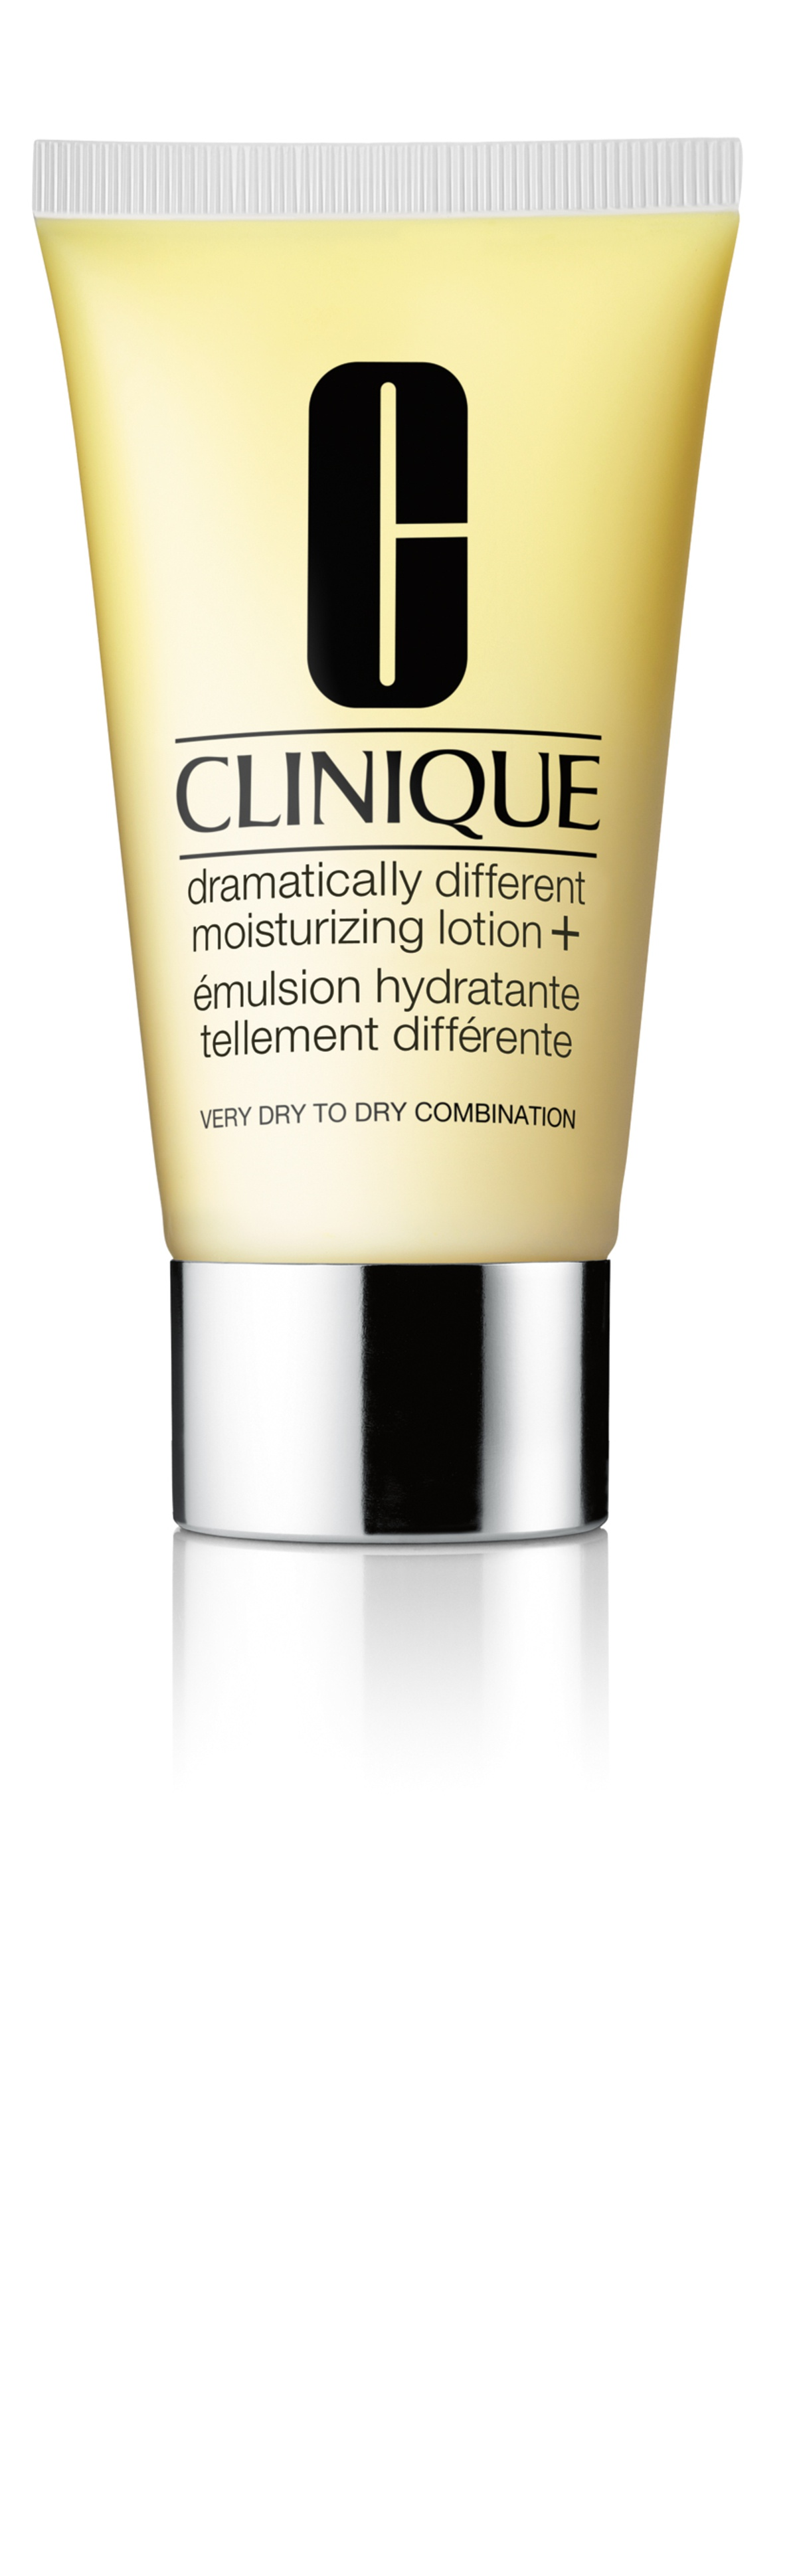 Clinique Dramatically Different Moisturizing Lotion+, 50 ml